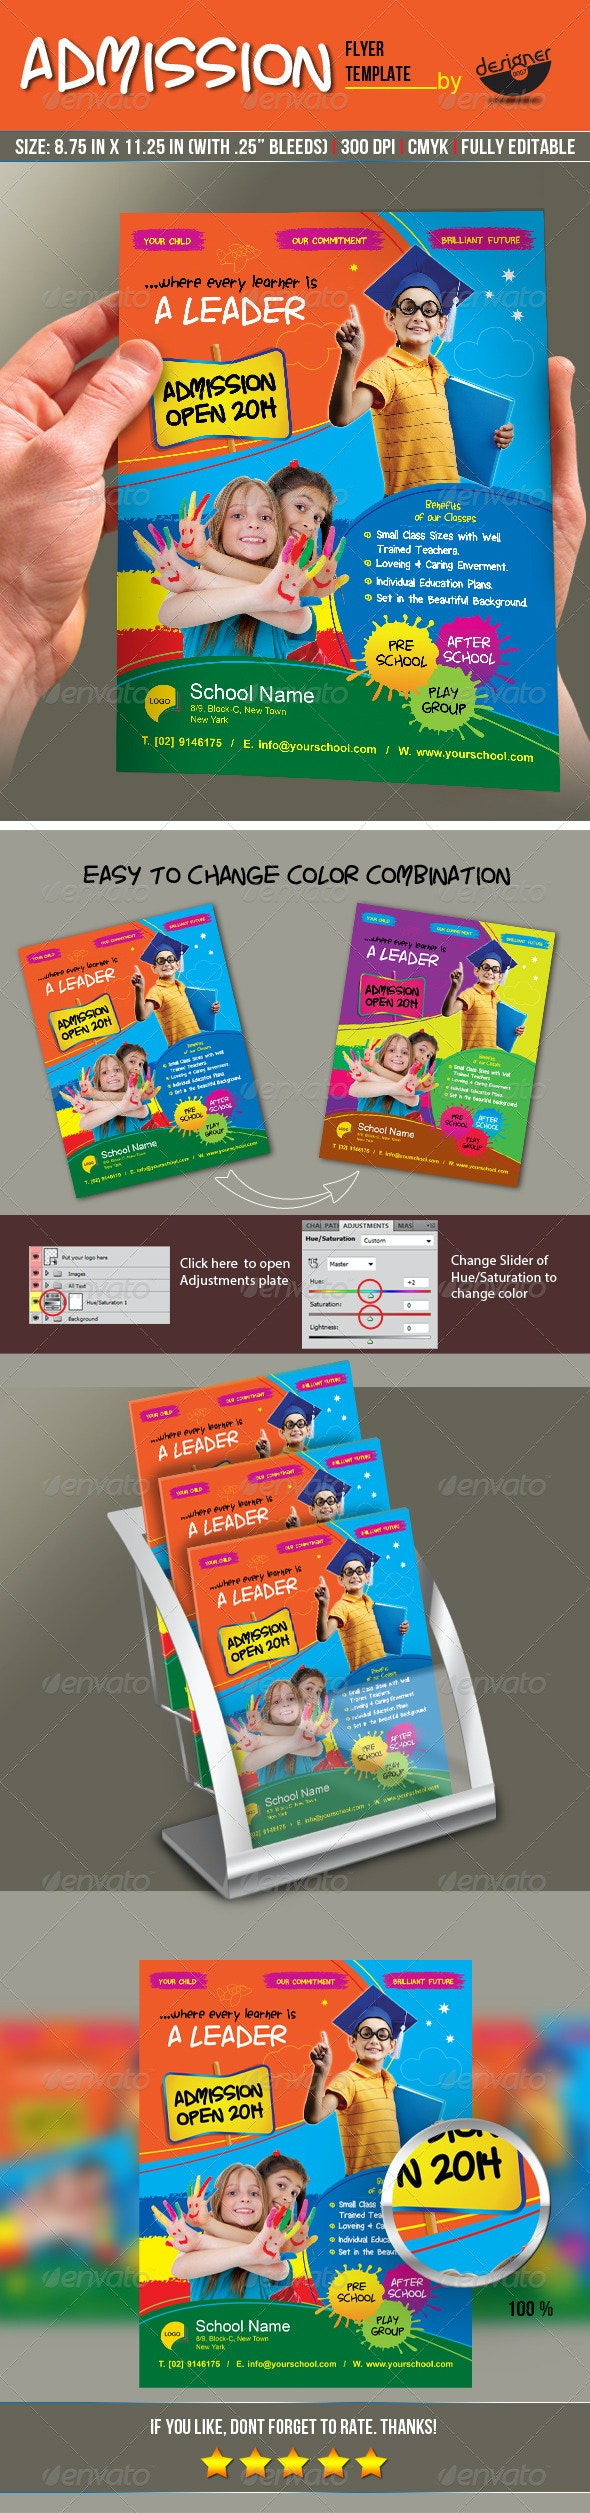 Junior School Admission Flyer Template - Corporate Flyers